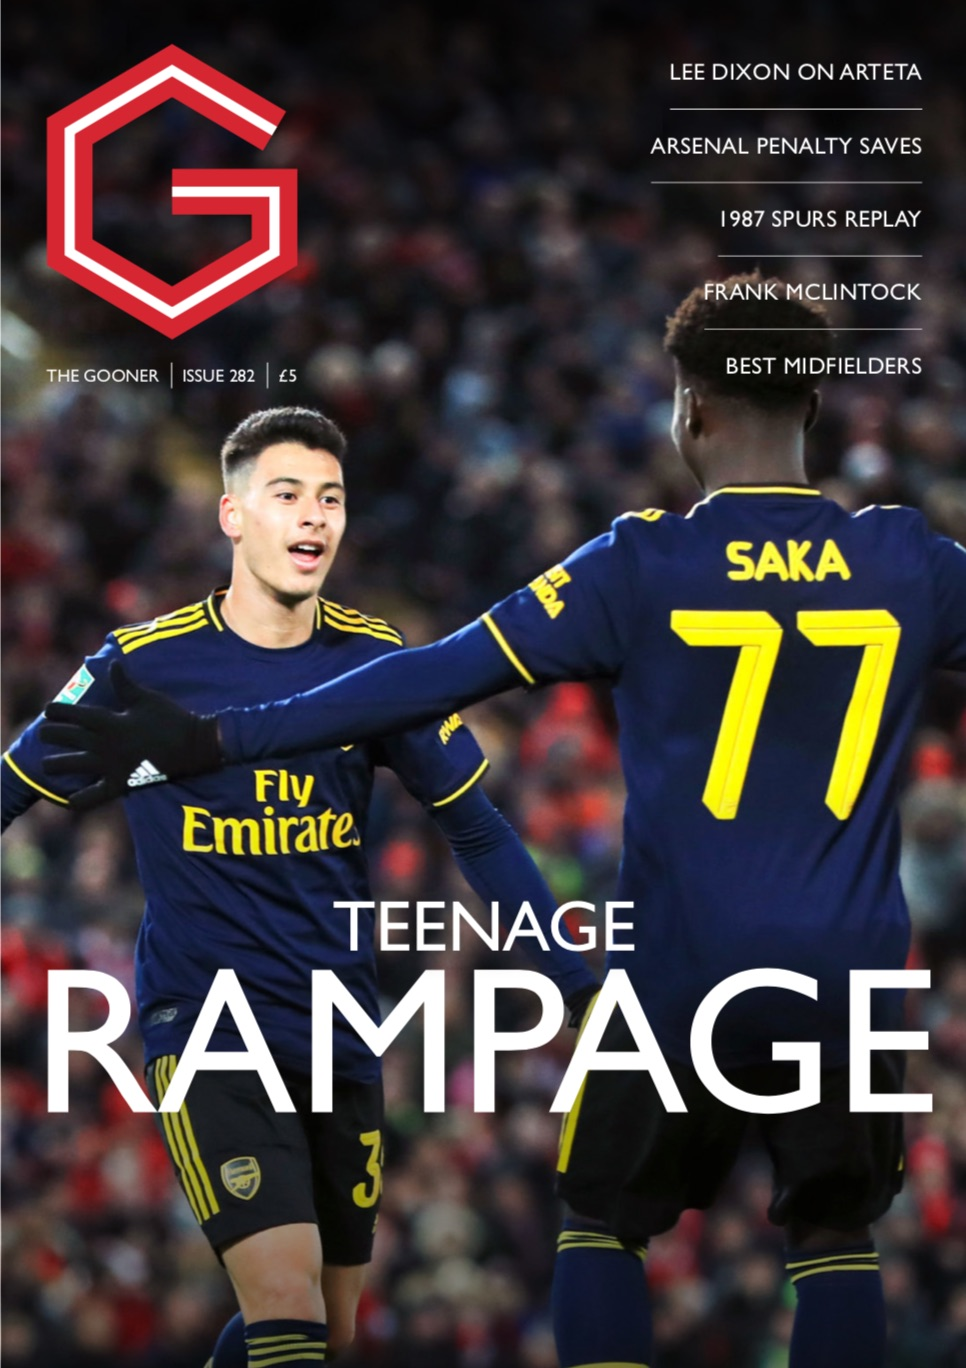 Current Edition (Overseas) – The Gooner Issue 282